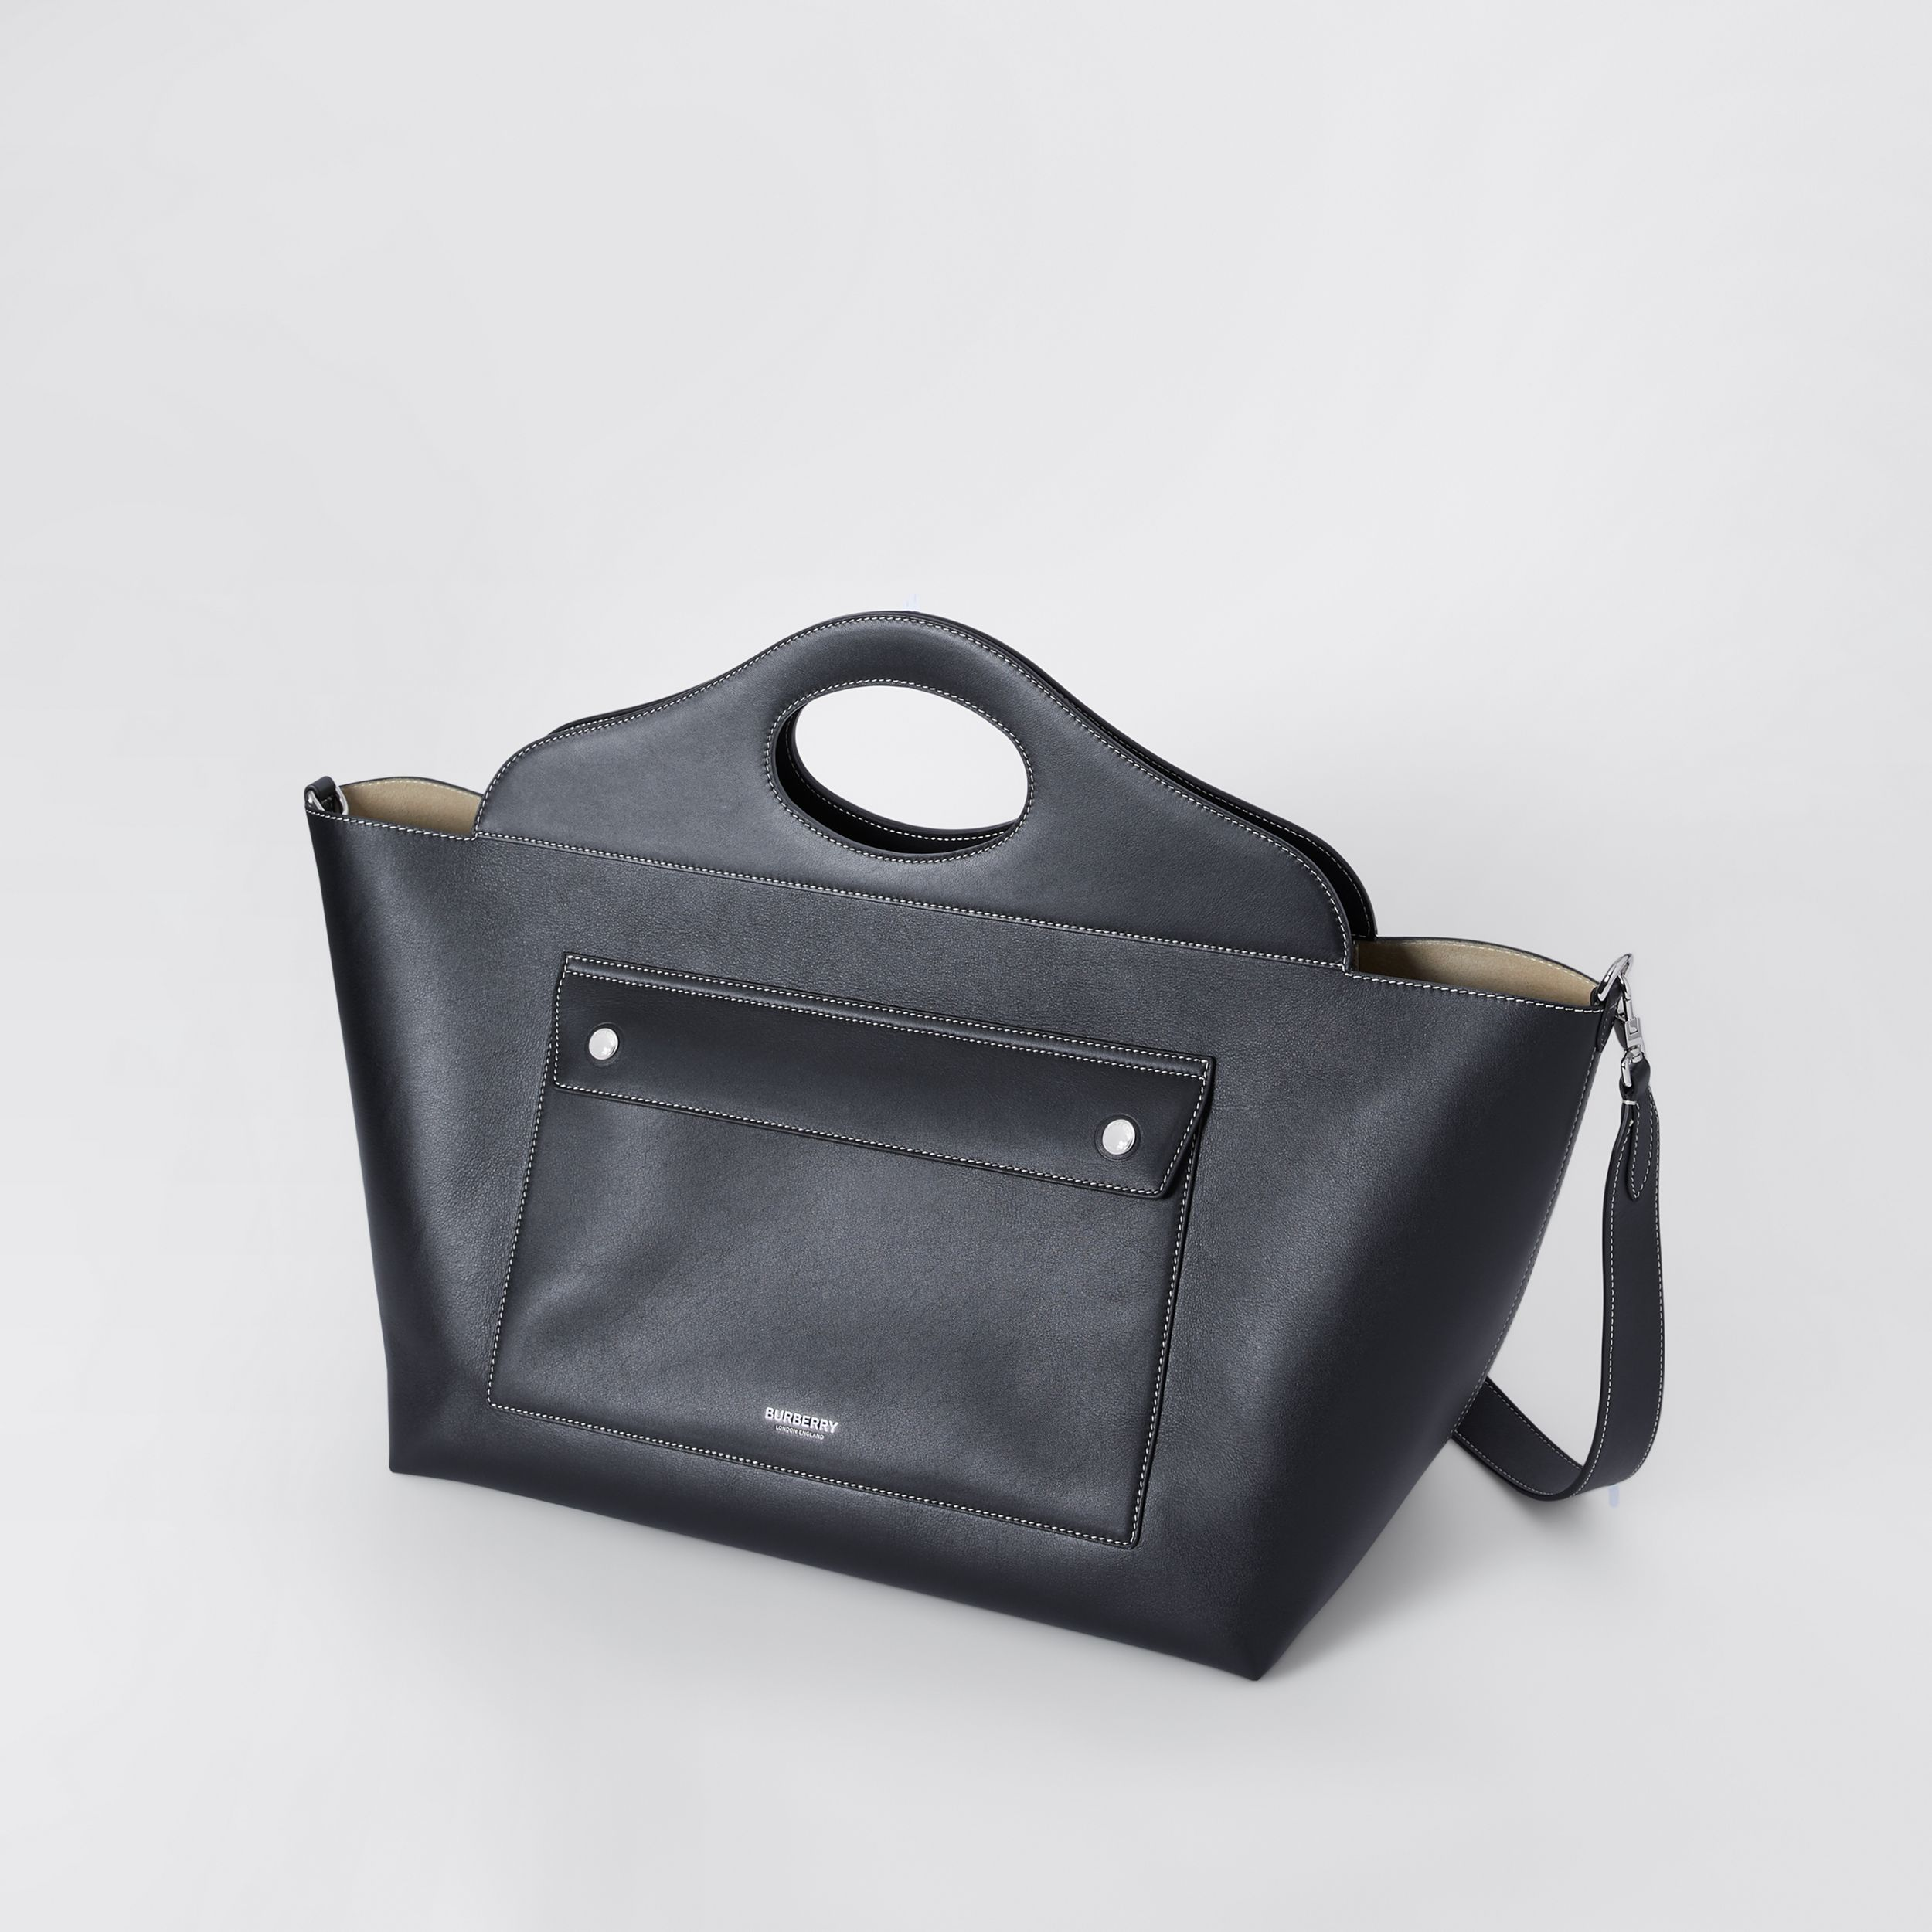 Medium Leather Soft Pocket Tote in Black - Women | Burberry - 4